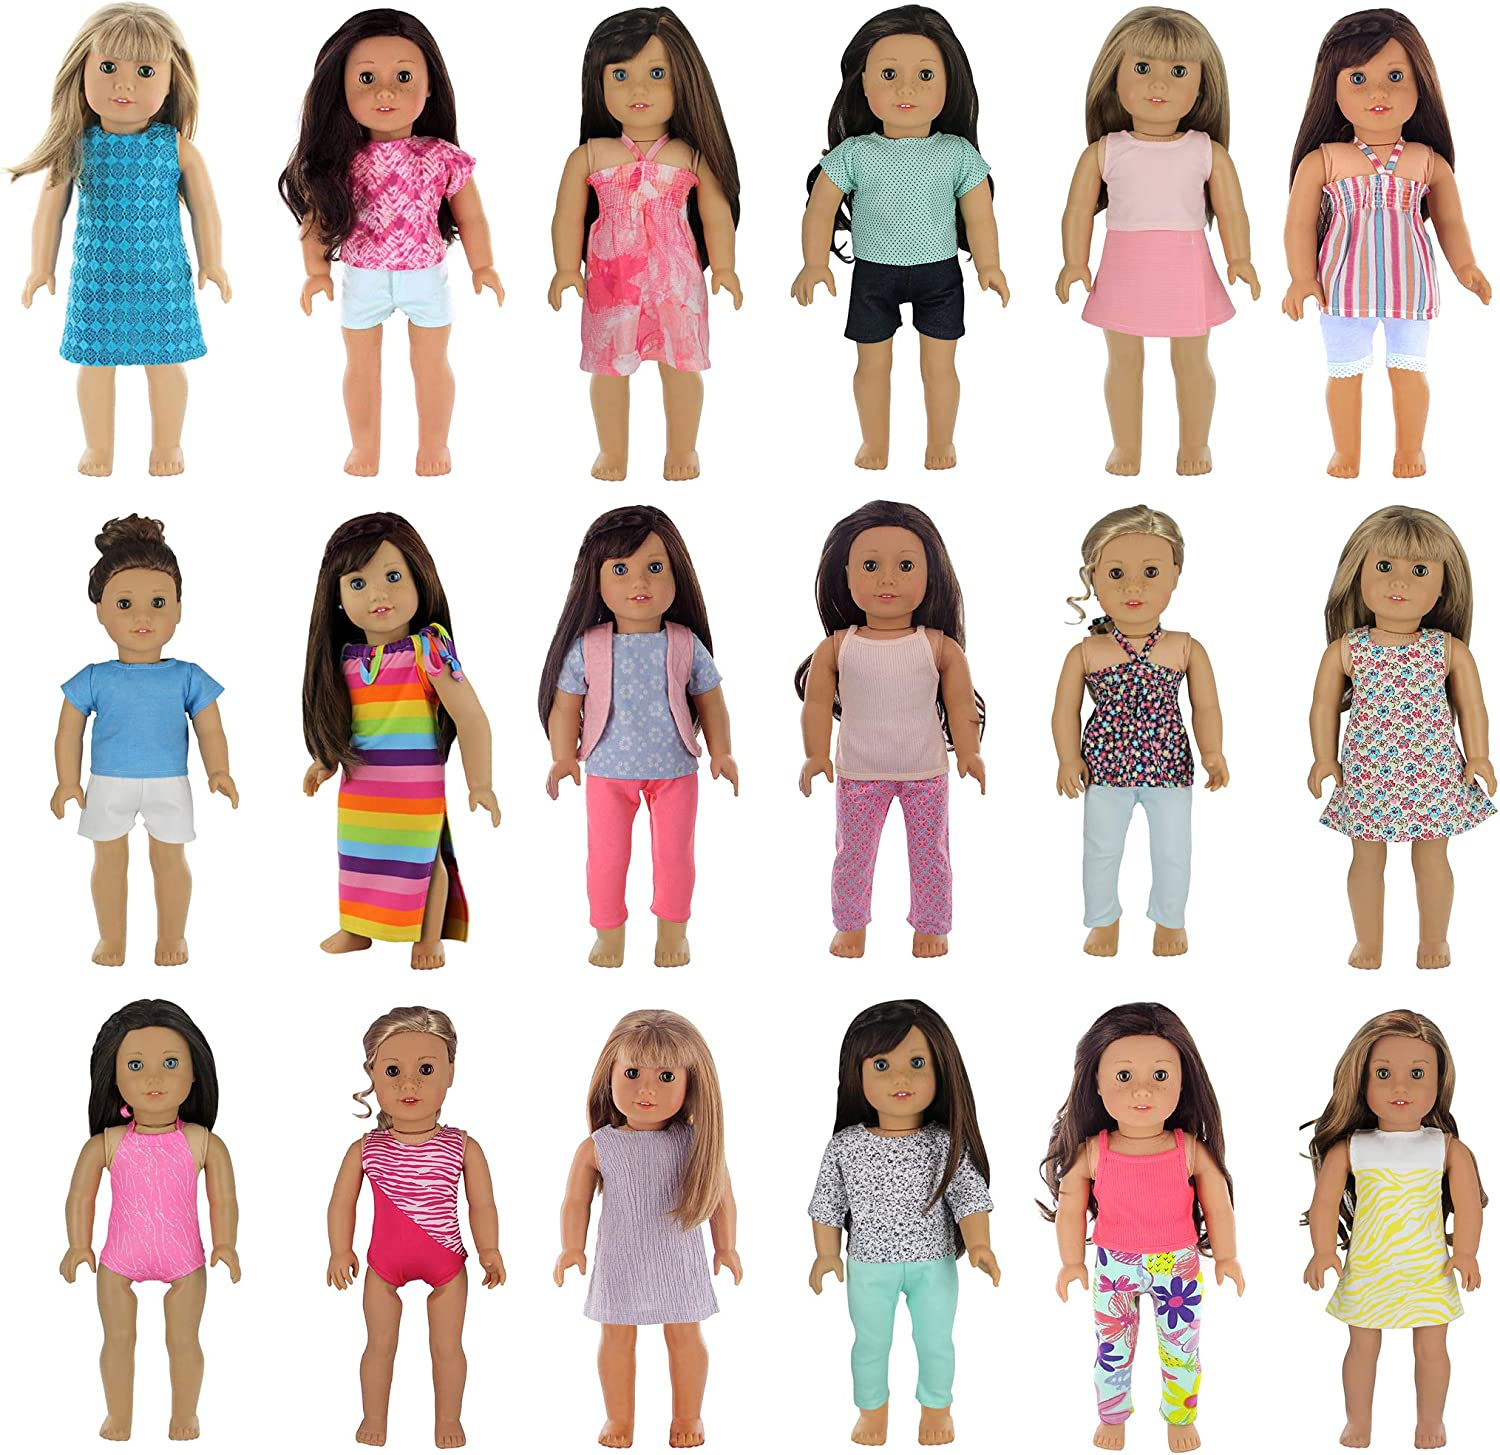 PZAS Toys 18 Outfit Set, Compatible with 18 Inch Dolls